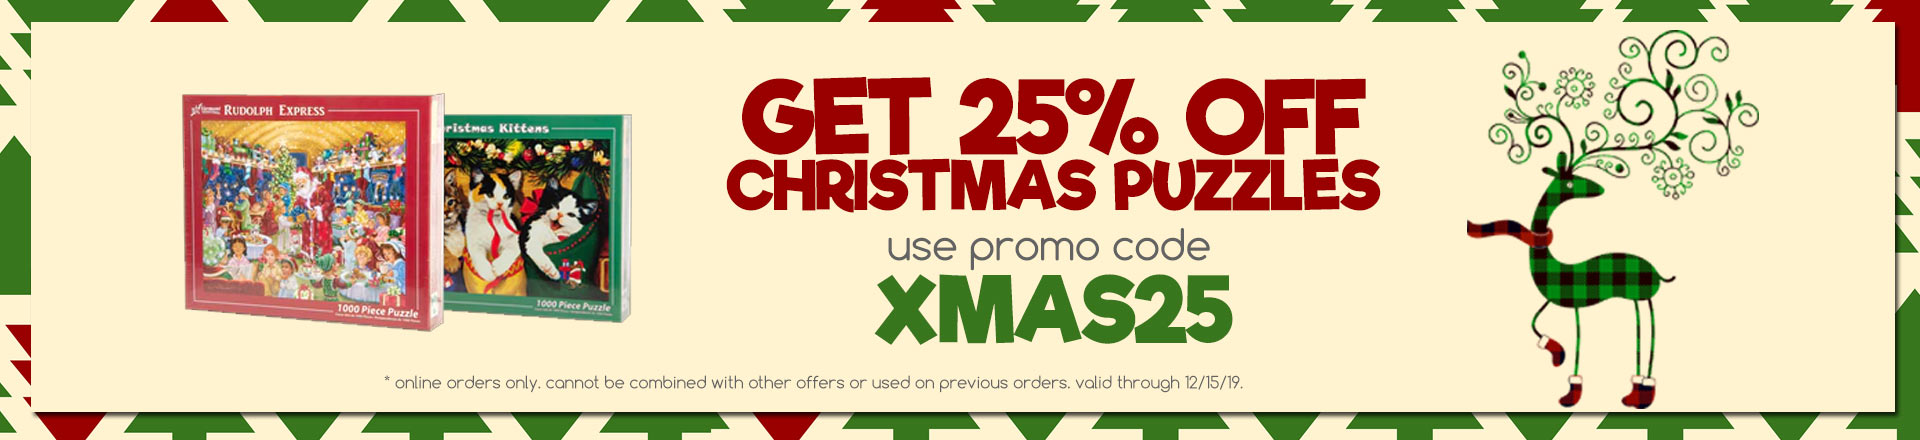 25% off Christmas Puzzles